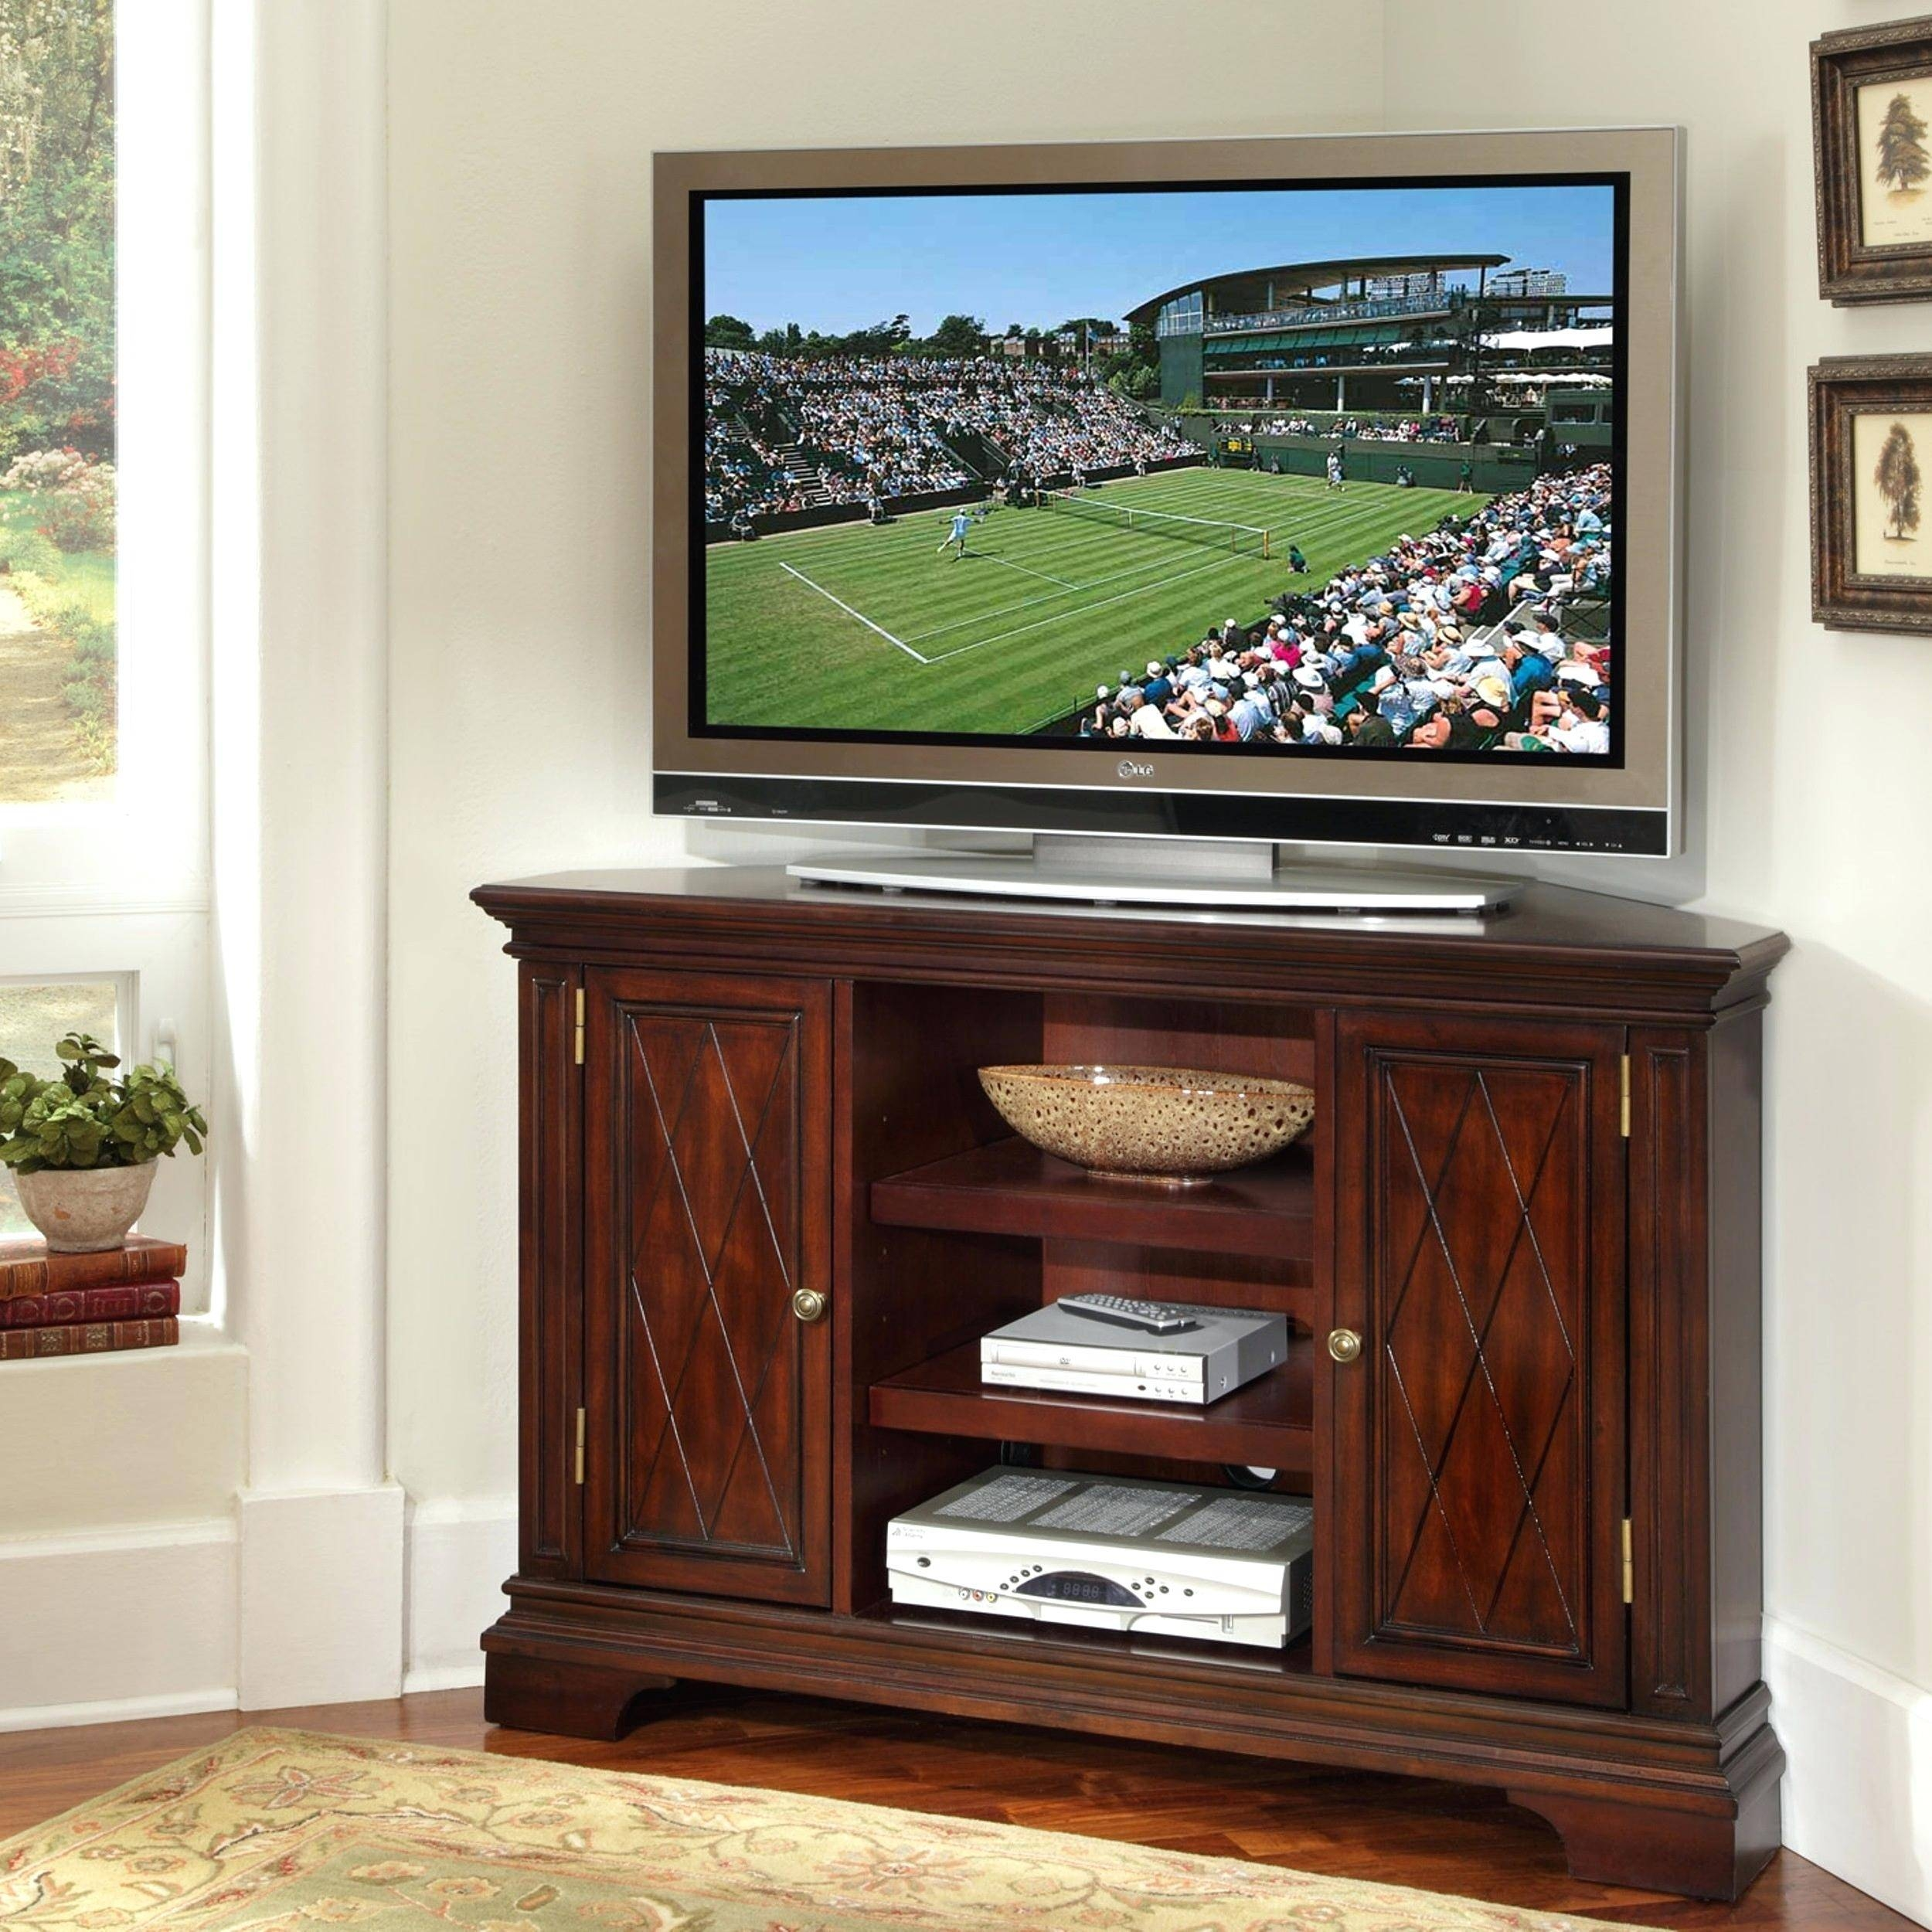 Tv Stand : 32 Large Size Of Tv Standscherry Wood Tv Stands With inside Cherry Wood Tv Cabinets (Image 10 of 15)